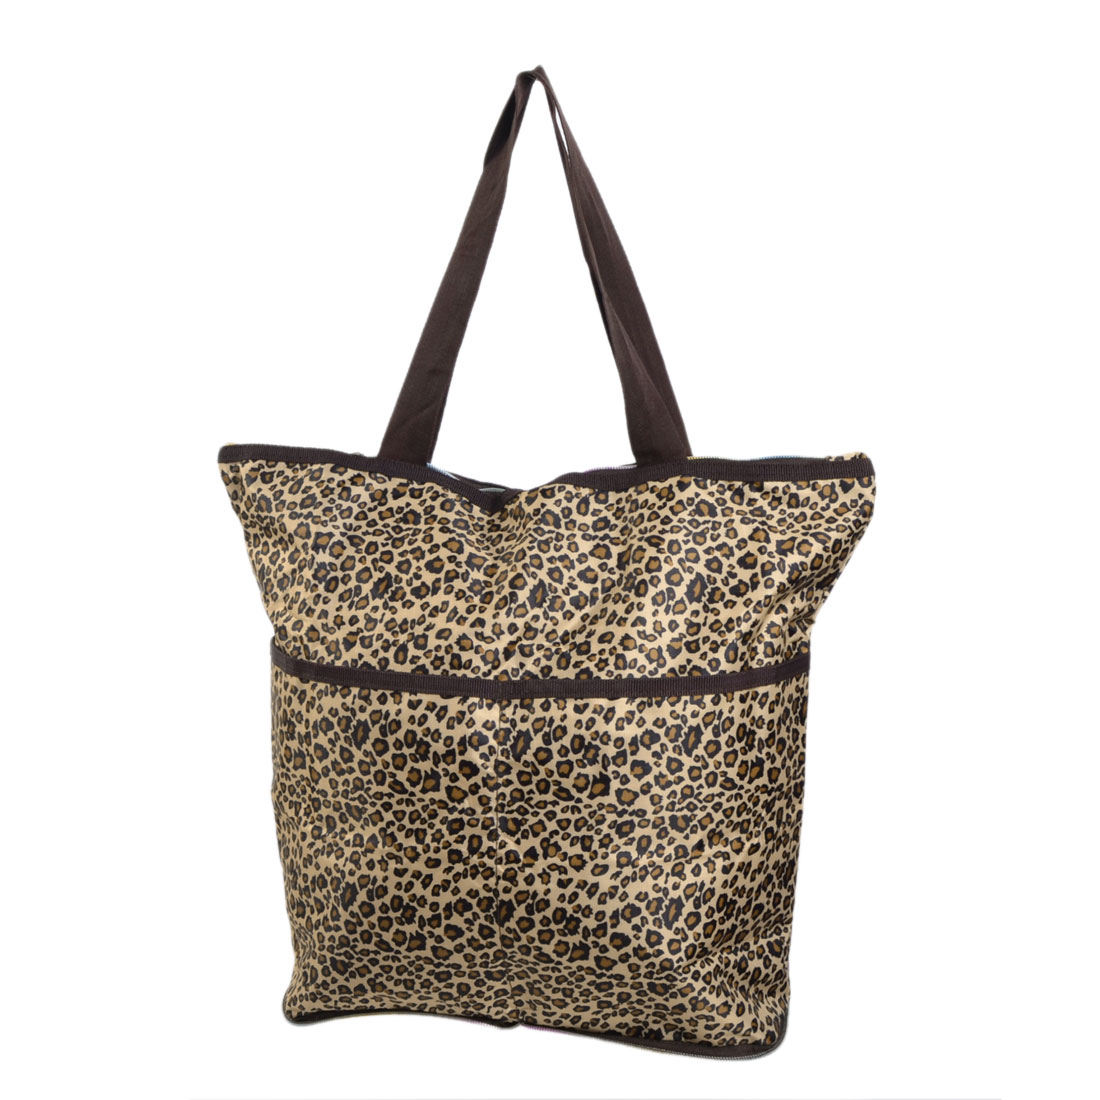 Traveling Household Foldable Leopard Pattern Zipper Closure Clothes Storage Shopping Tote Bag Pouch Brown Beige